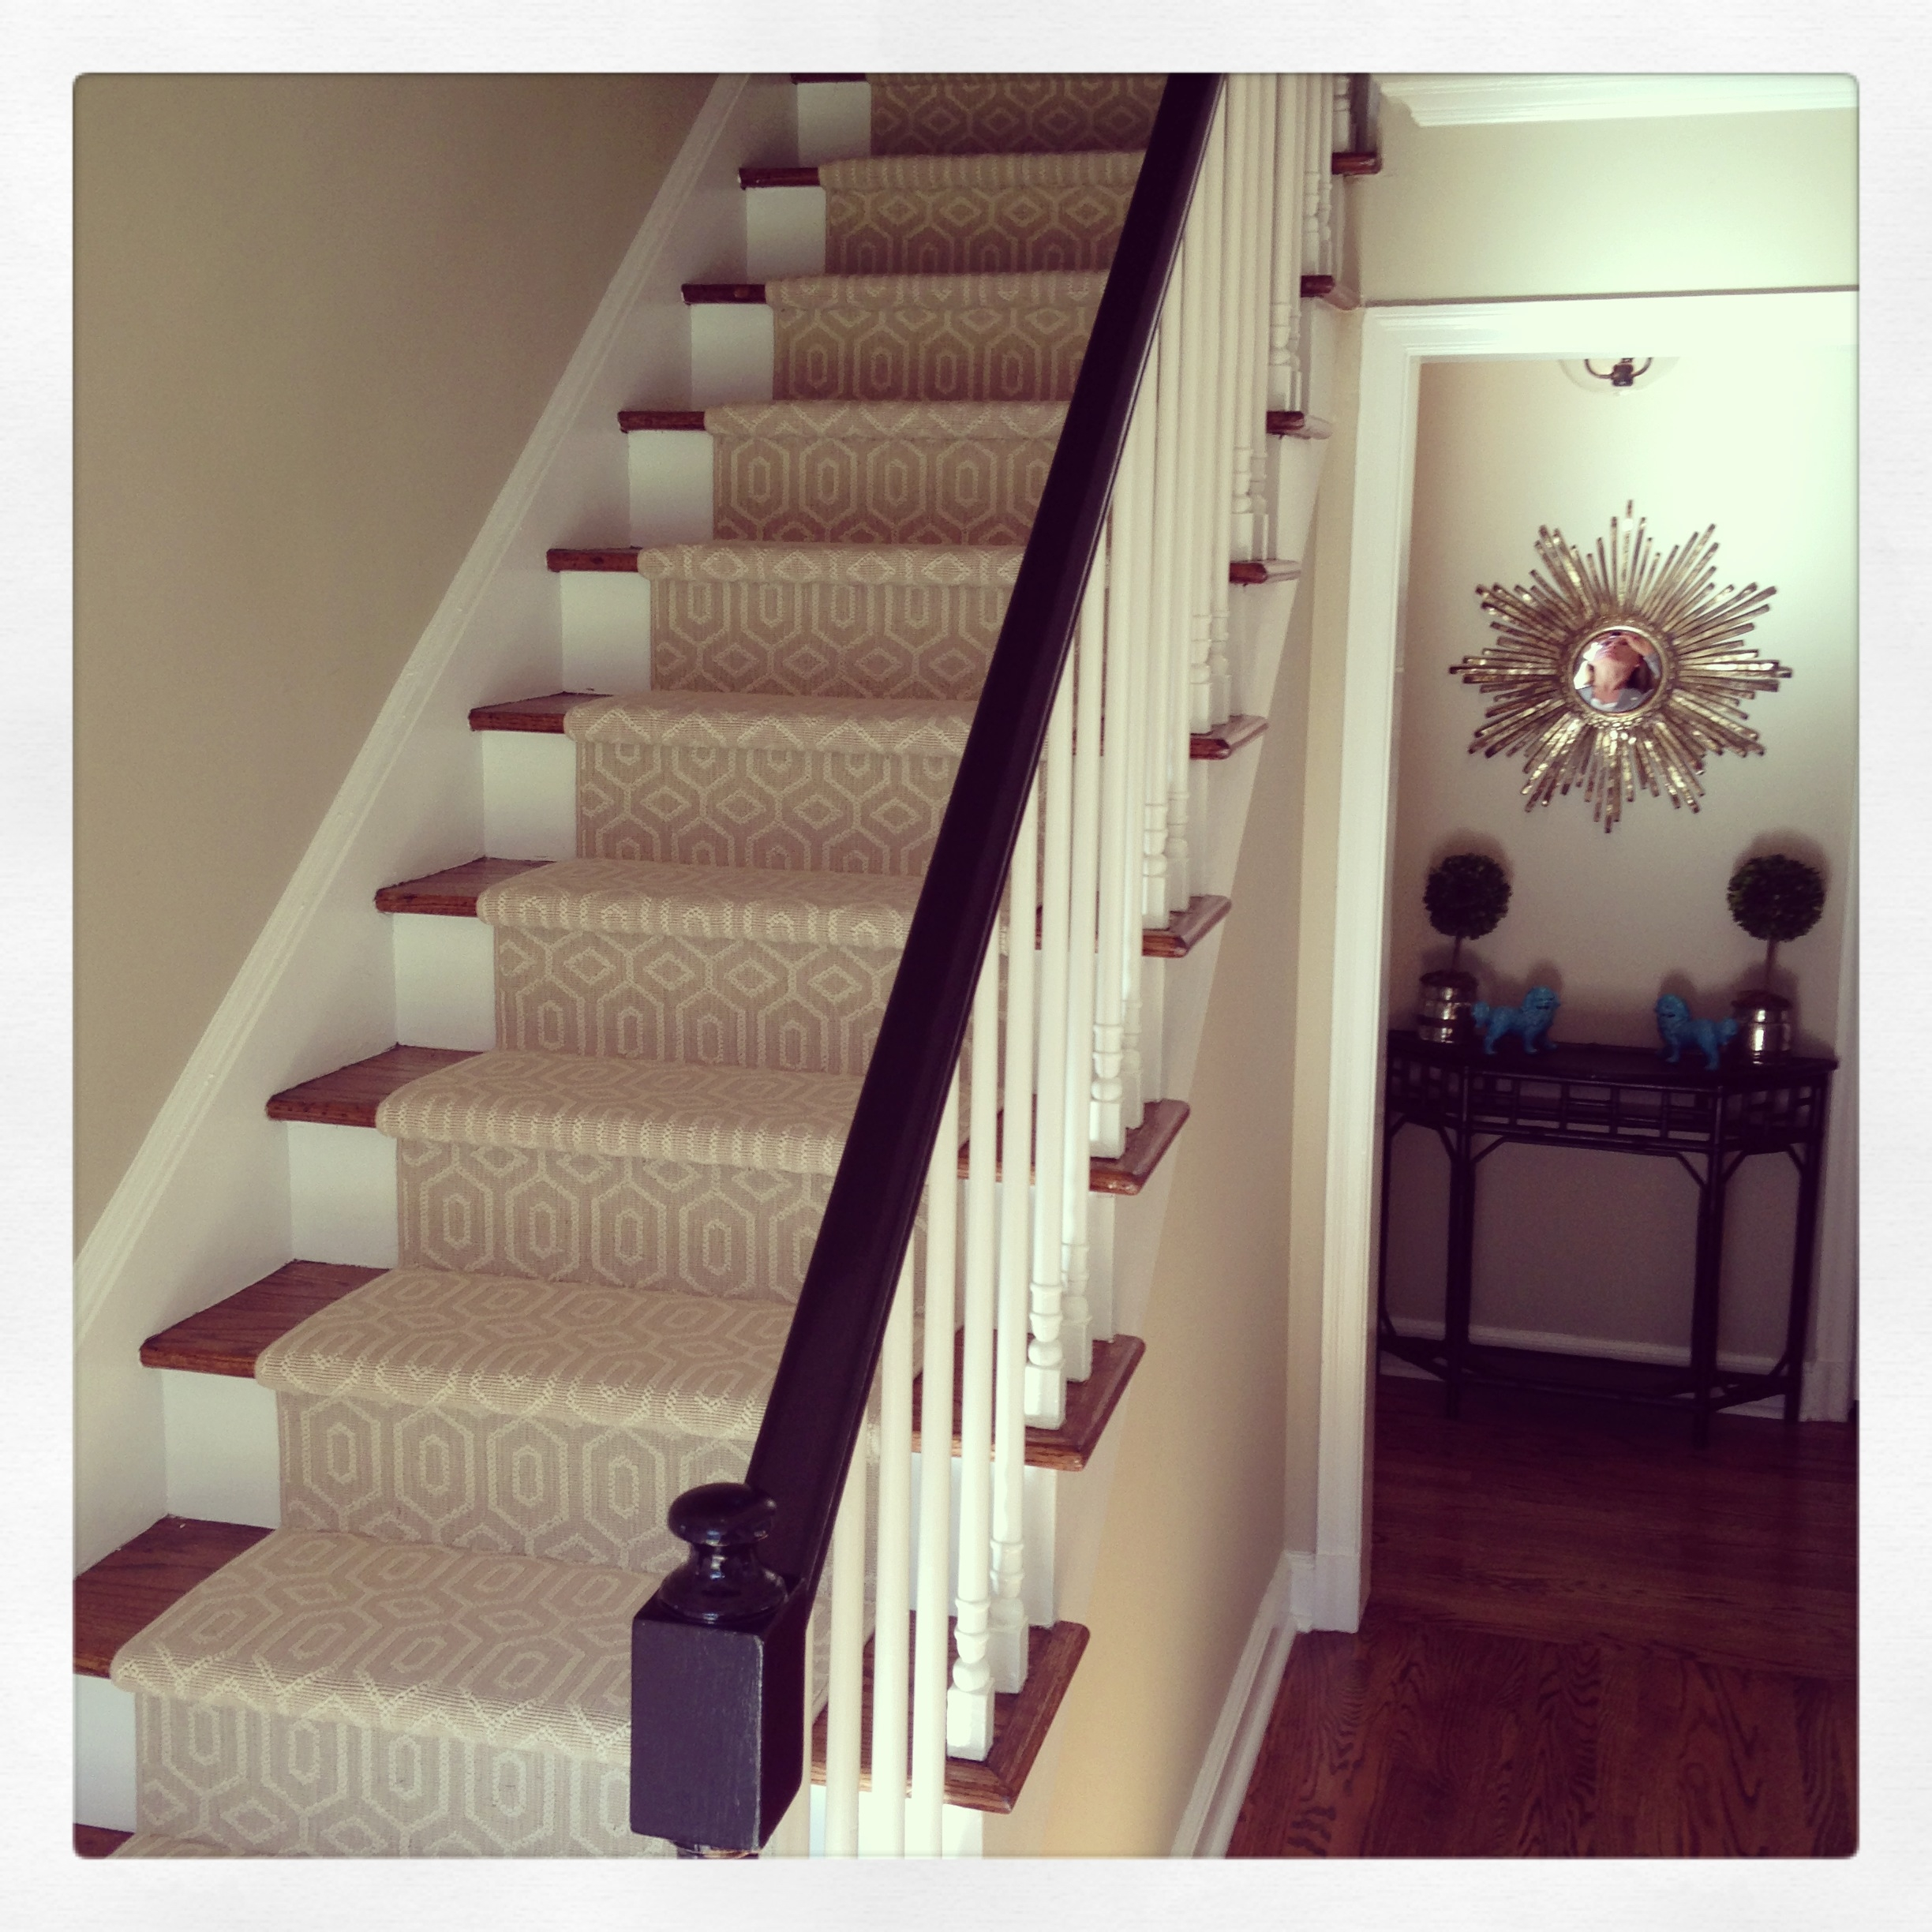 Choosing A Stair Runner Some Inspiration And Lessons Learned | Small Rugs For Stairs | Area Rug | Stair Tread | Wood | Stair Rods | Stair Case